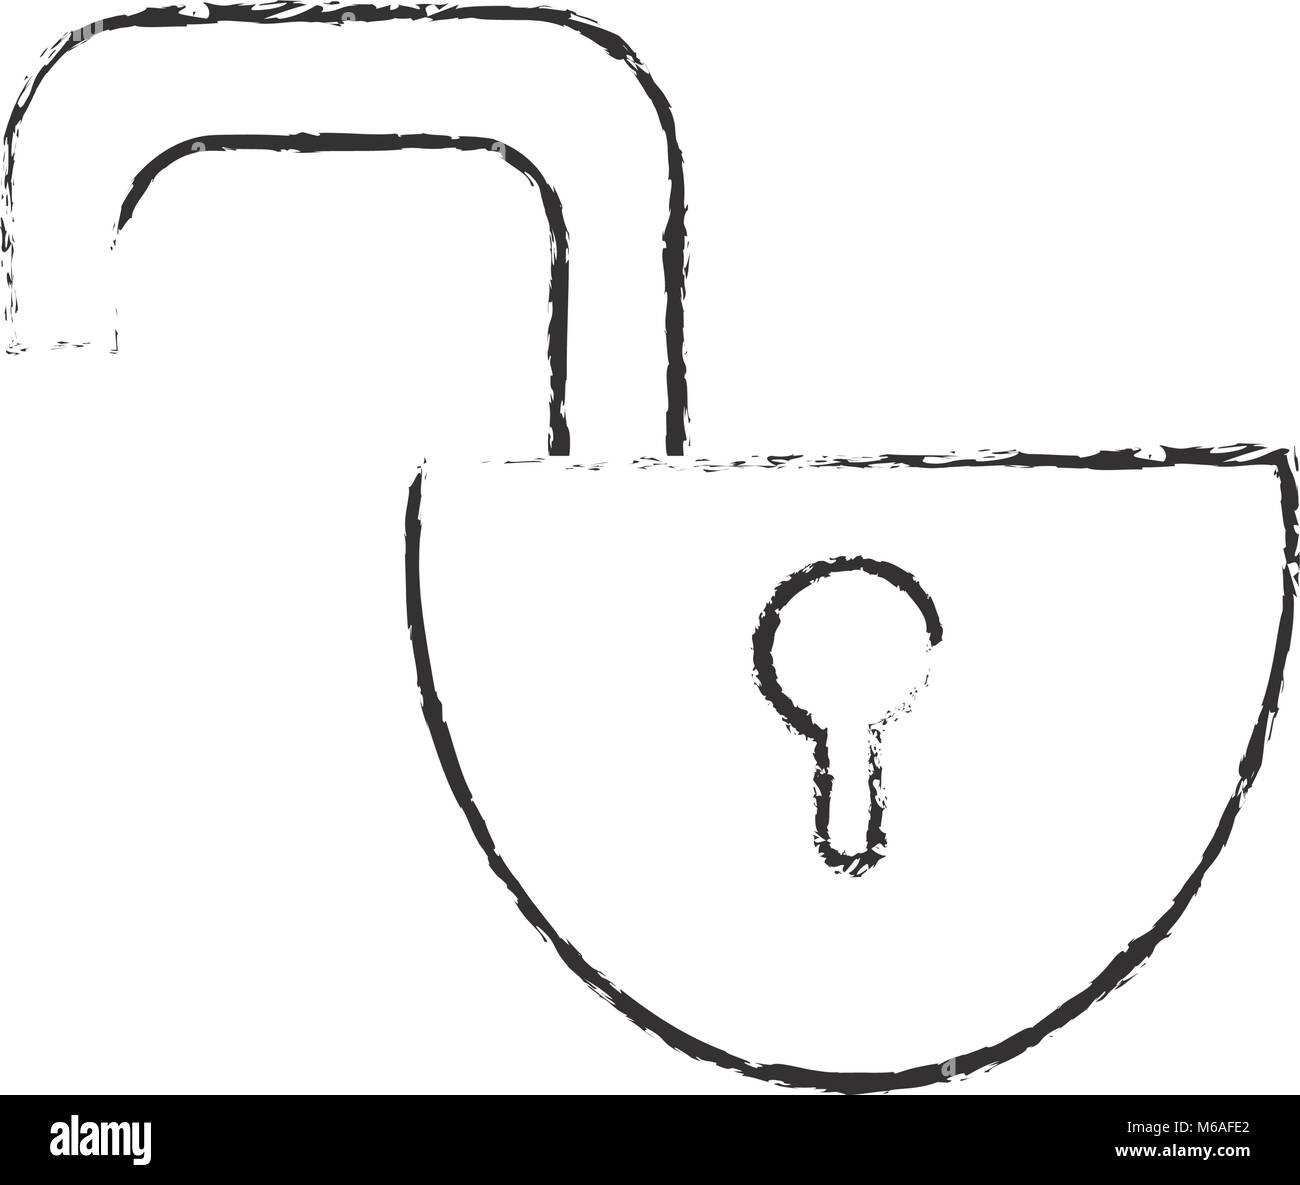 grunge open padlock object to protection privacy - Stock Image